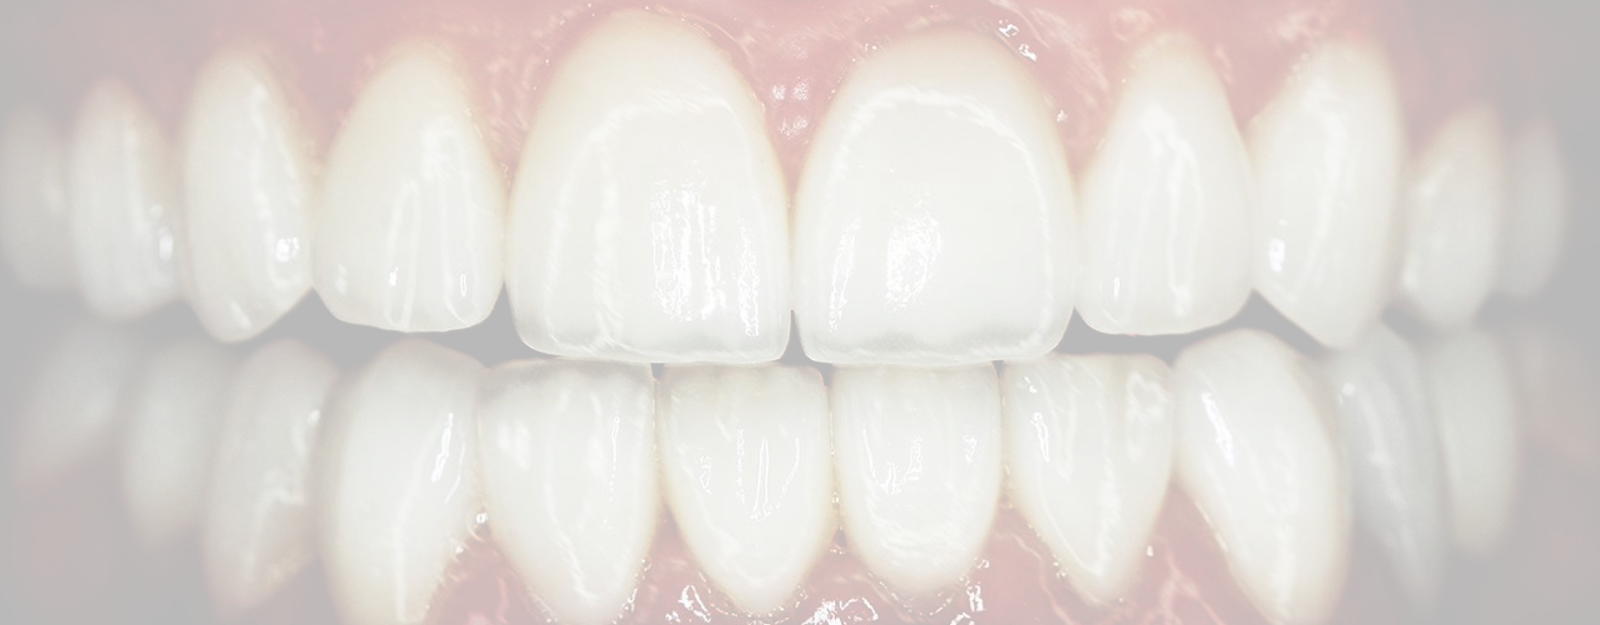 Don't like teeth? Fix with cosmetic work,